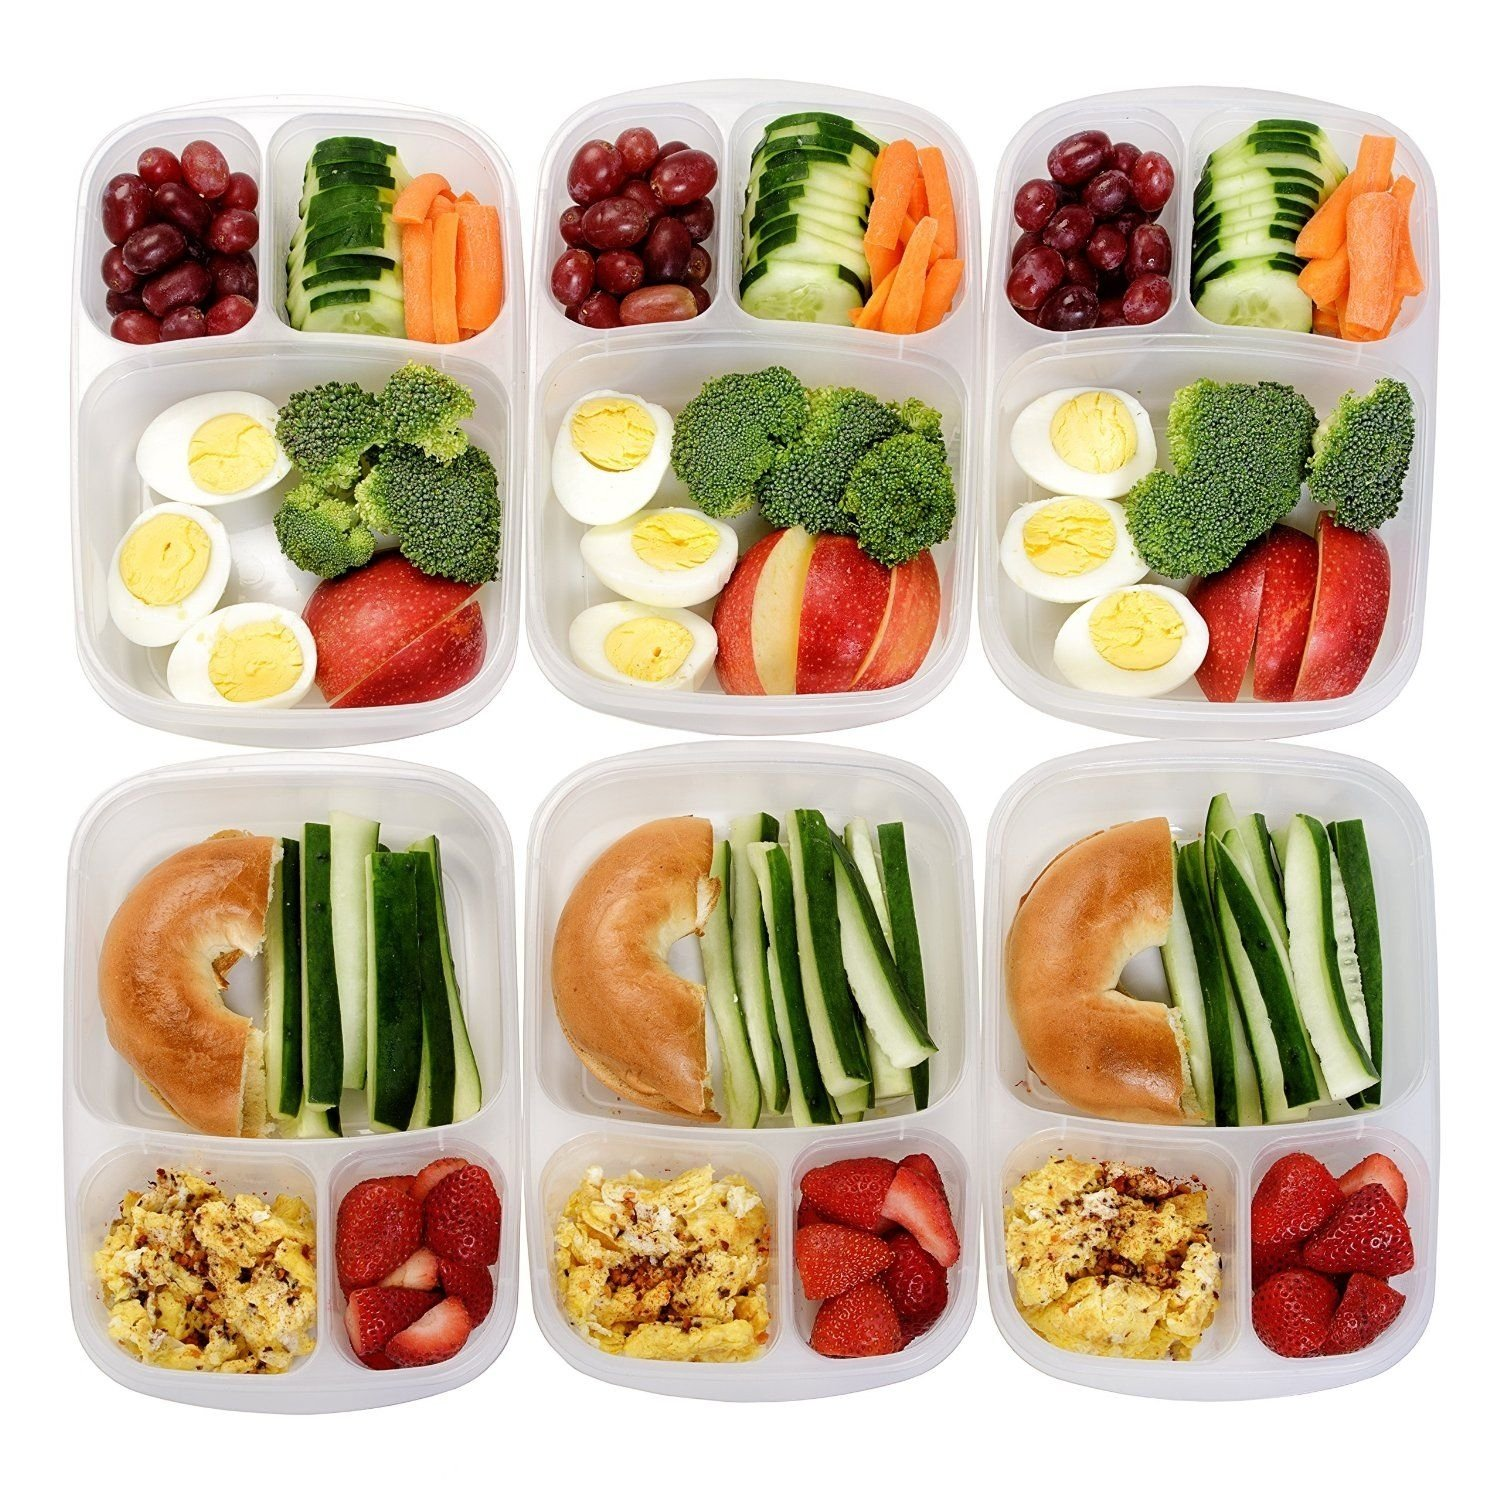 10 Most Popular Meal Ideas For Weight Loss 13 make ahead meals for healthy eating on the go meals snacks and 7 2020